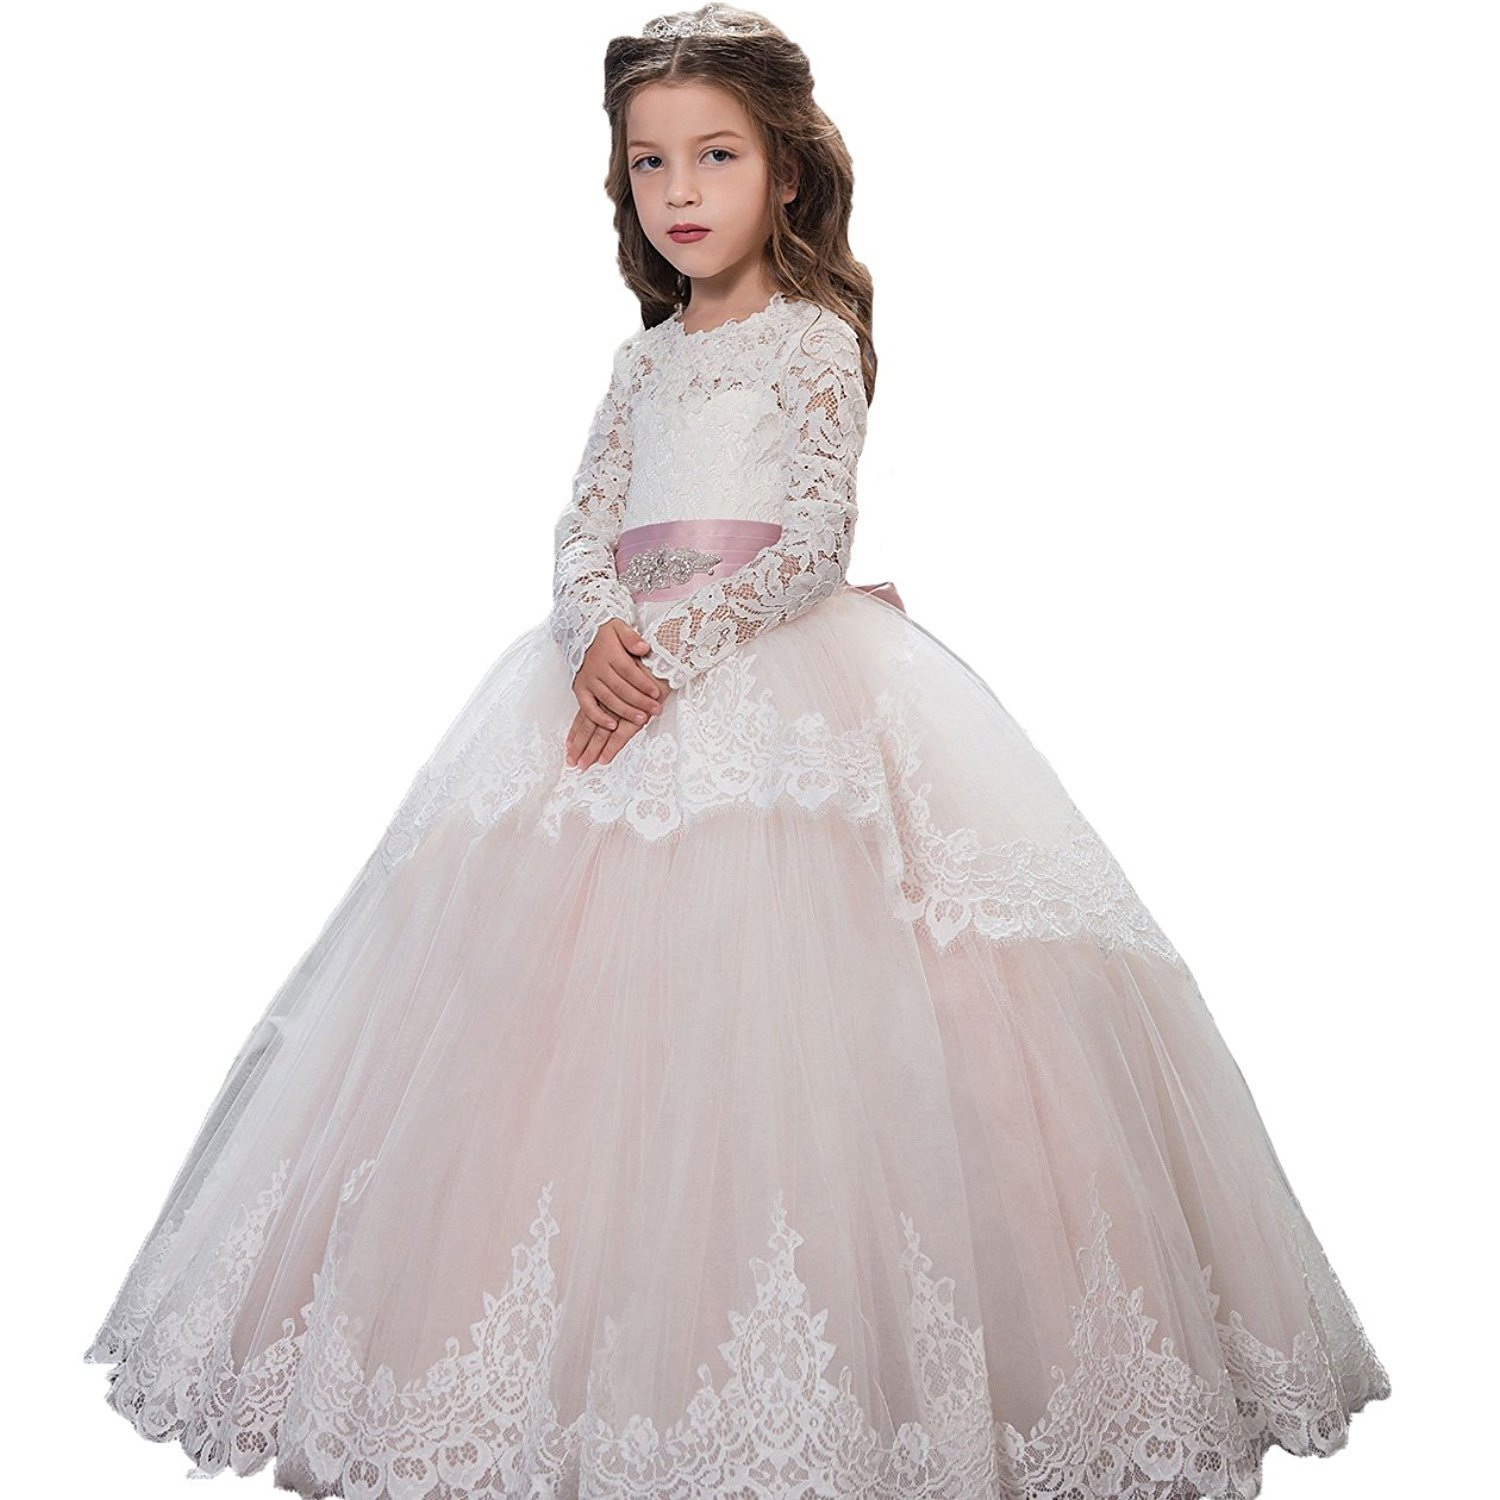 Vintage Look Communion Dresses